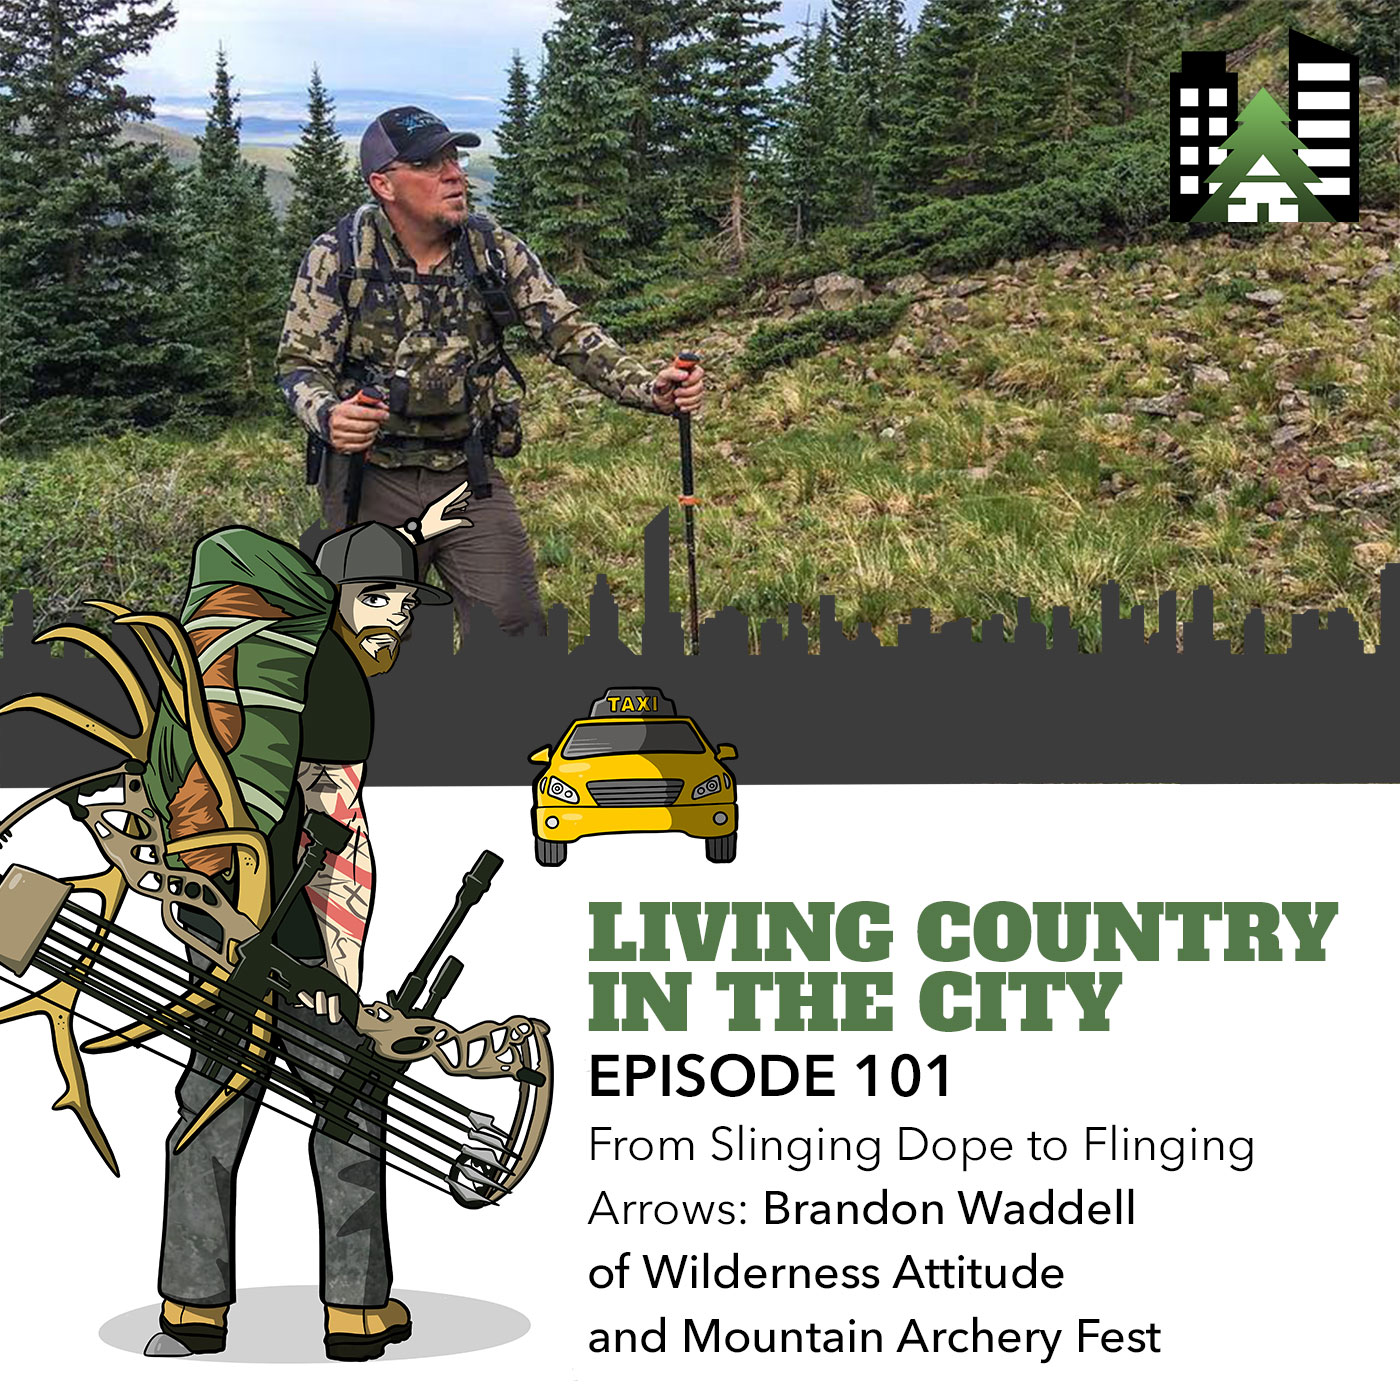 Living Country in the City Episode 101 - From Slinging Dope to Flinging Arrows: Brandon Waddell of Wilderness Attitude and Mountain Archery Fest